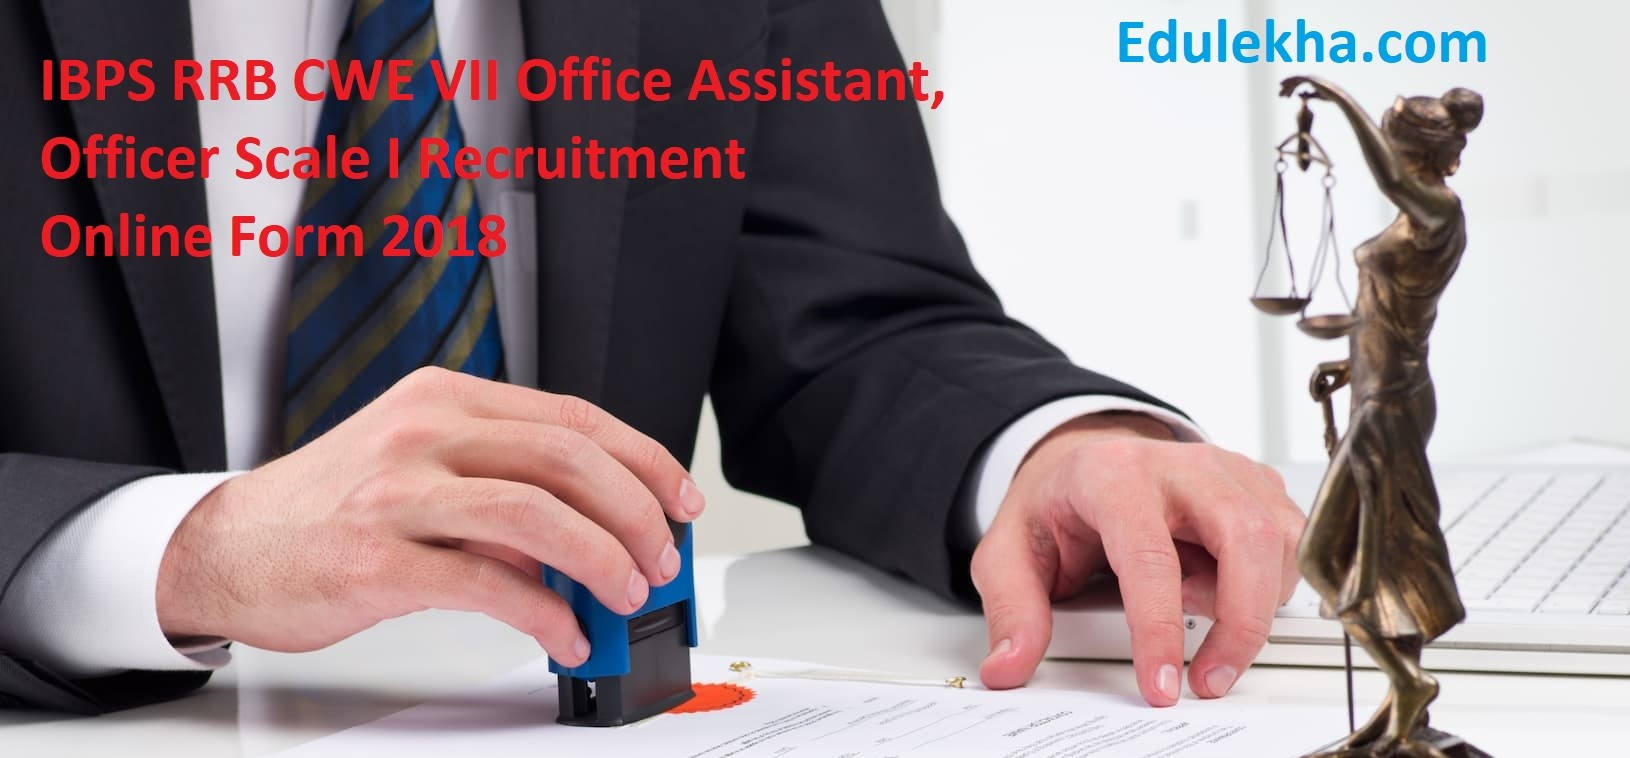 IBPS RRB CWE VII Office Assistant, Officer Scale I Recruitment 2018